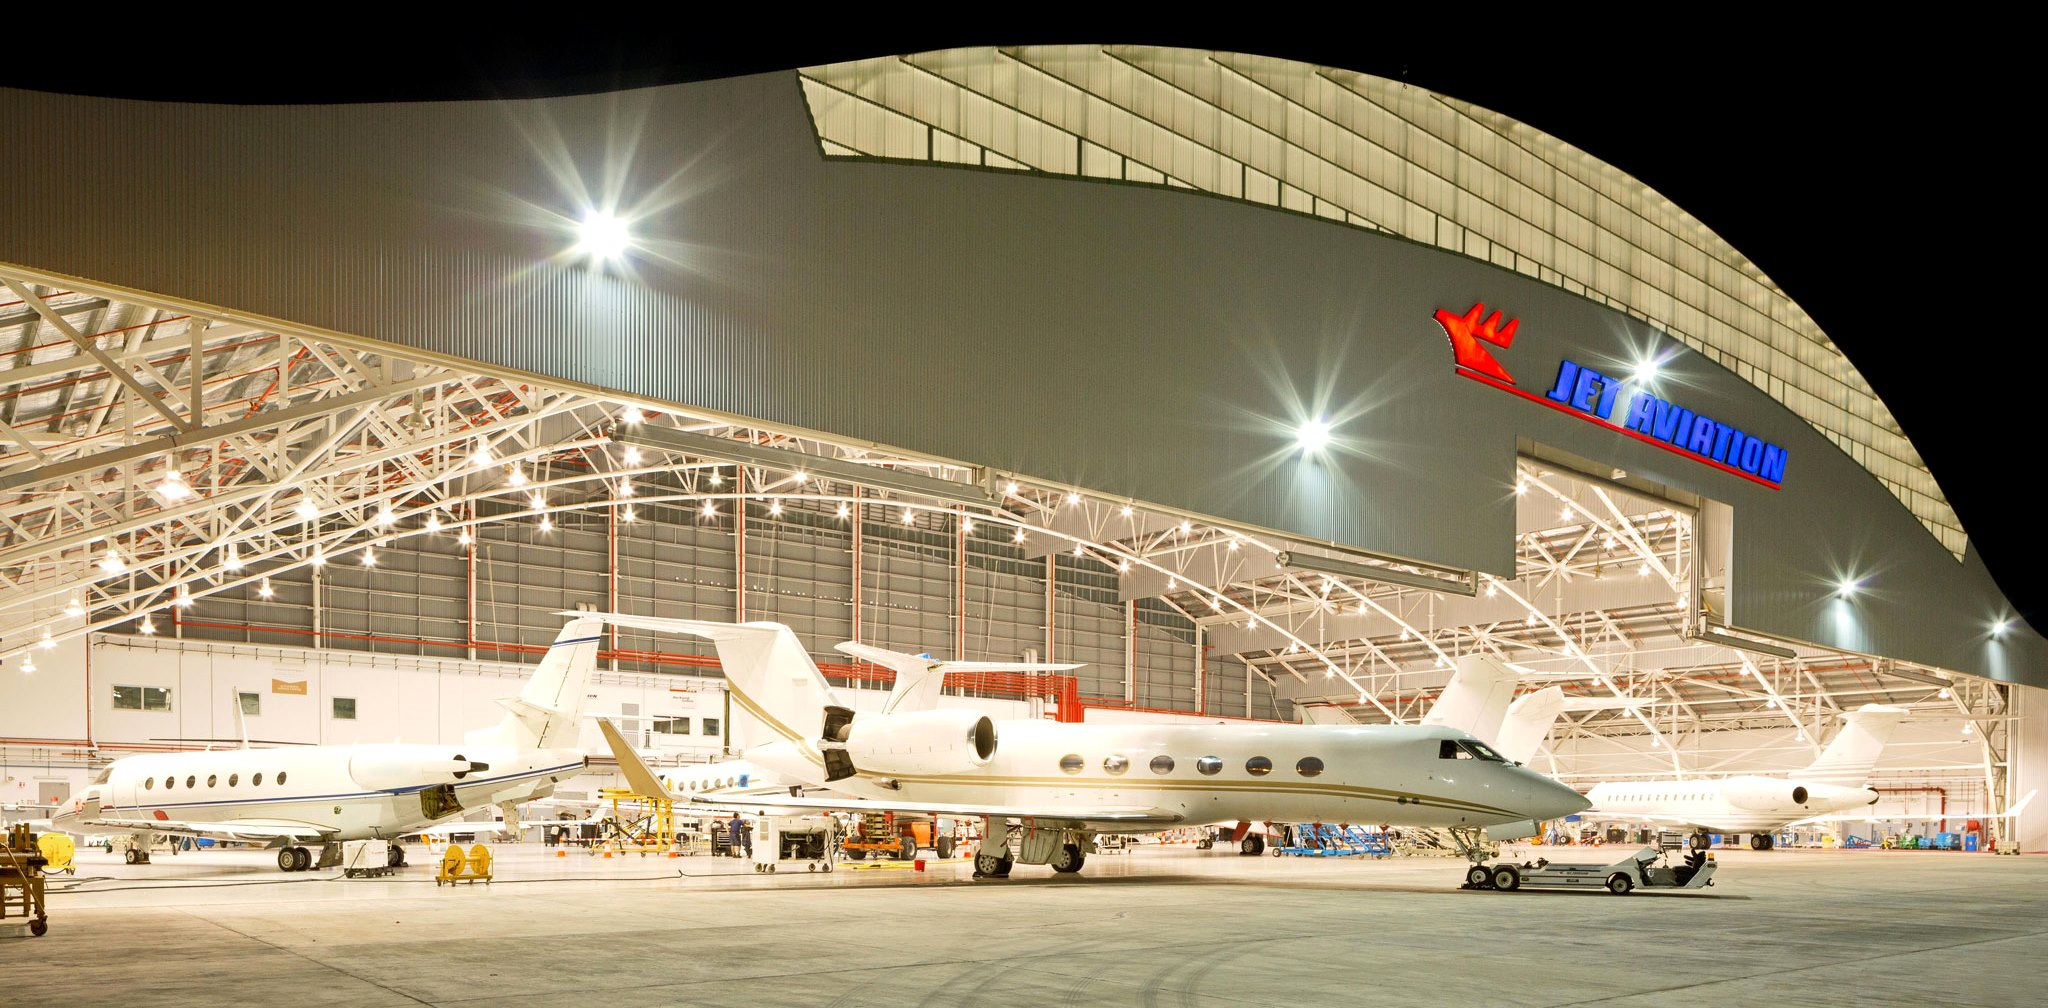 fbo-business-jet-asia-pacific